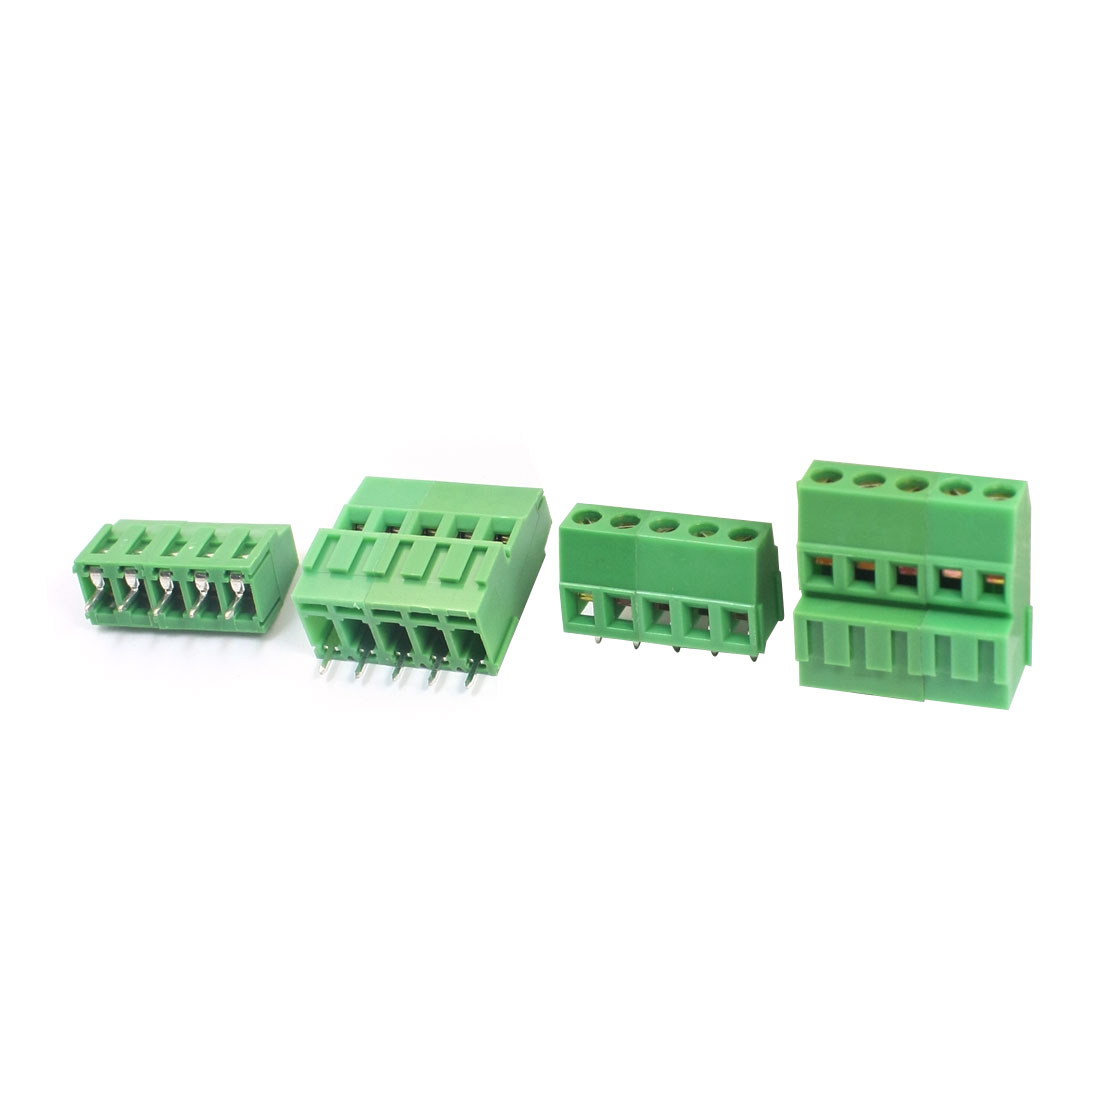 2Pcs 5mm Spacing 24-12AWG 10Pin 10-Position PCB Mounting Screw Type Terminal Barrier Block Connector